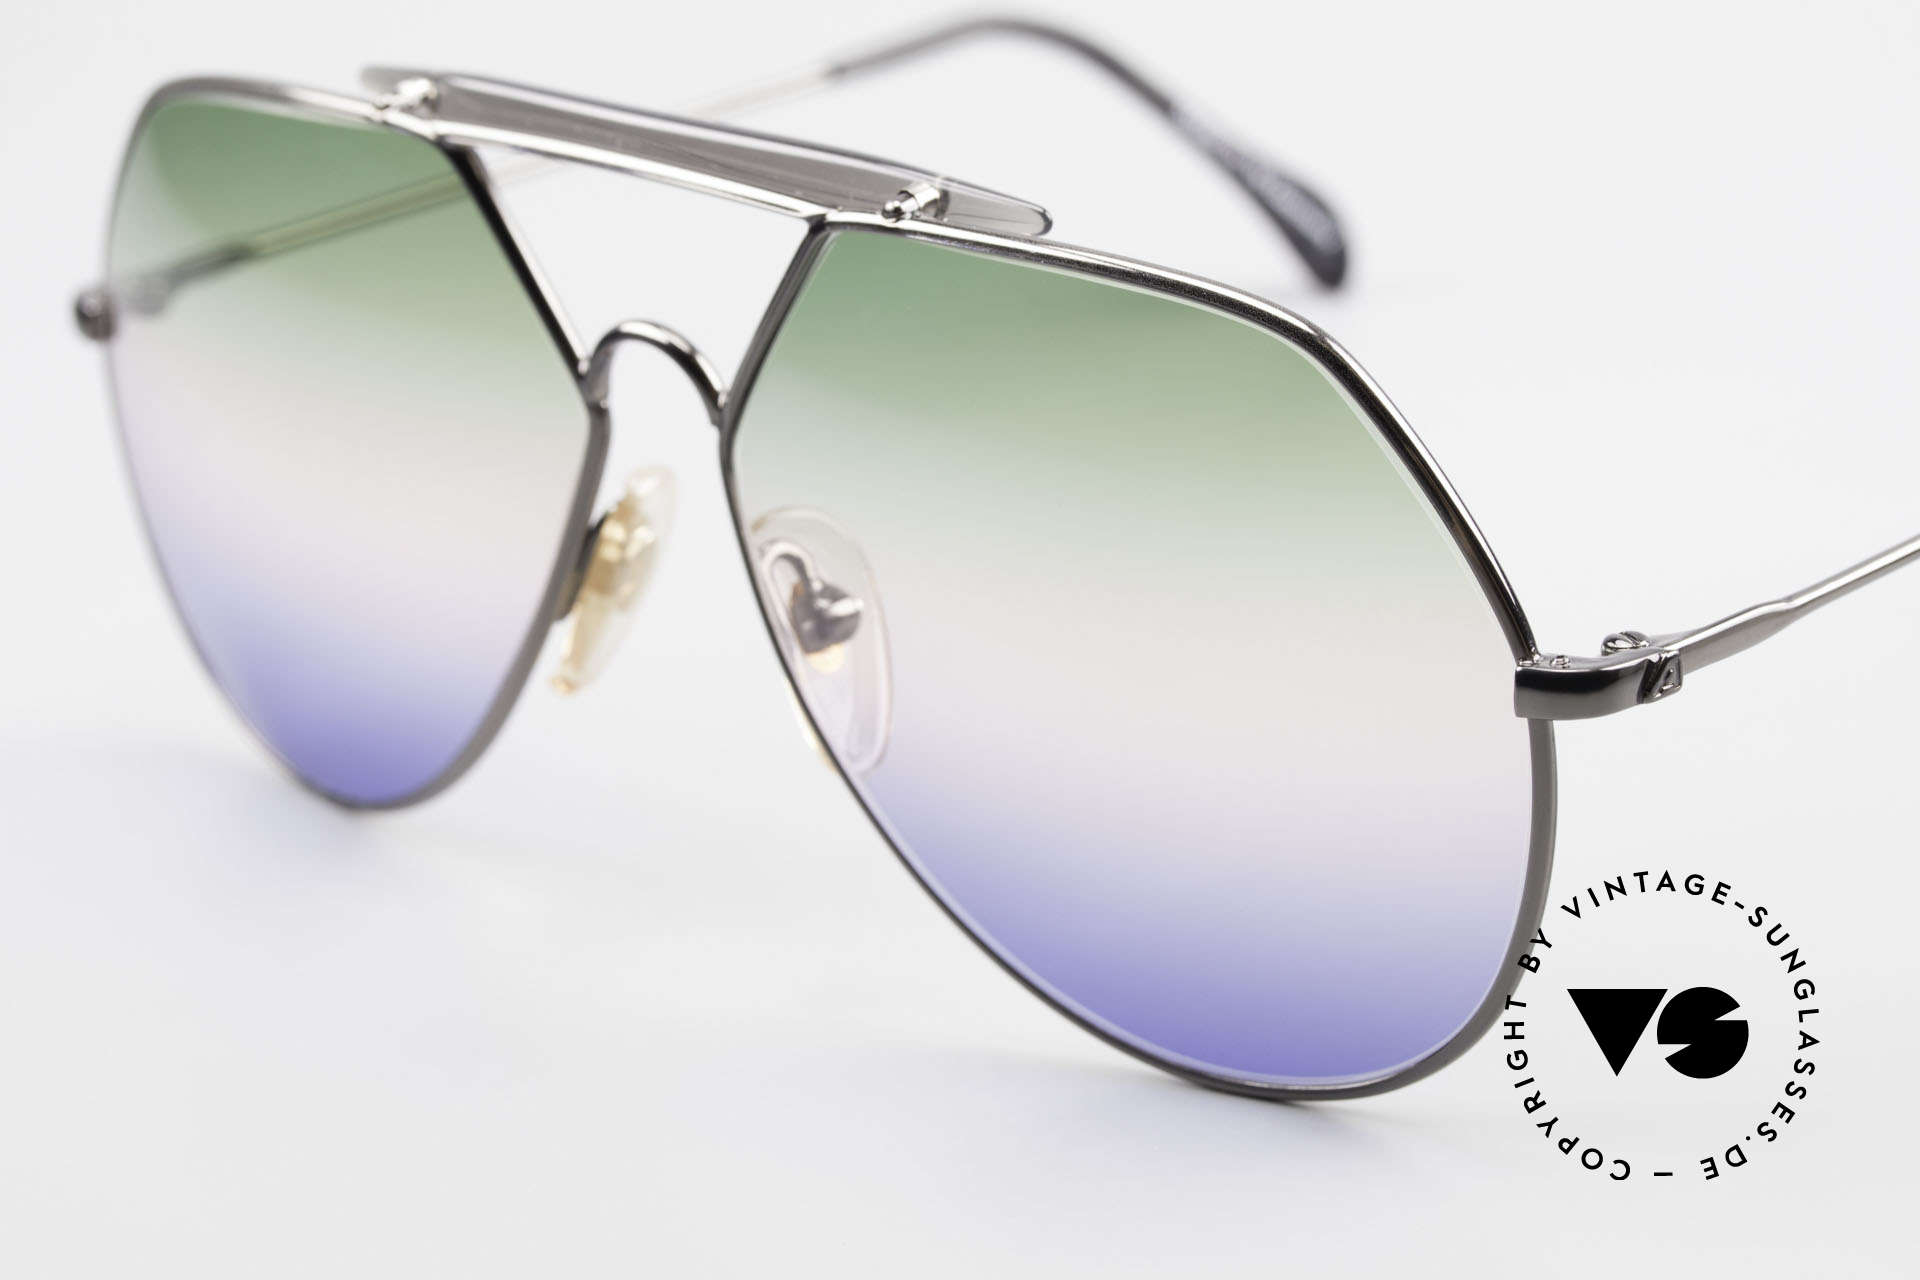 Alpina TR5 West Germany Aviator Frame, a fancy fashion accessory in TOP-NOTCH quality!, Made for Men